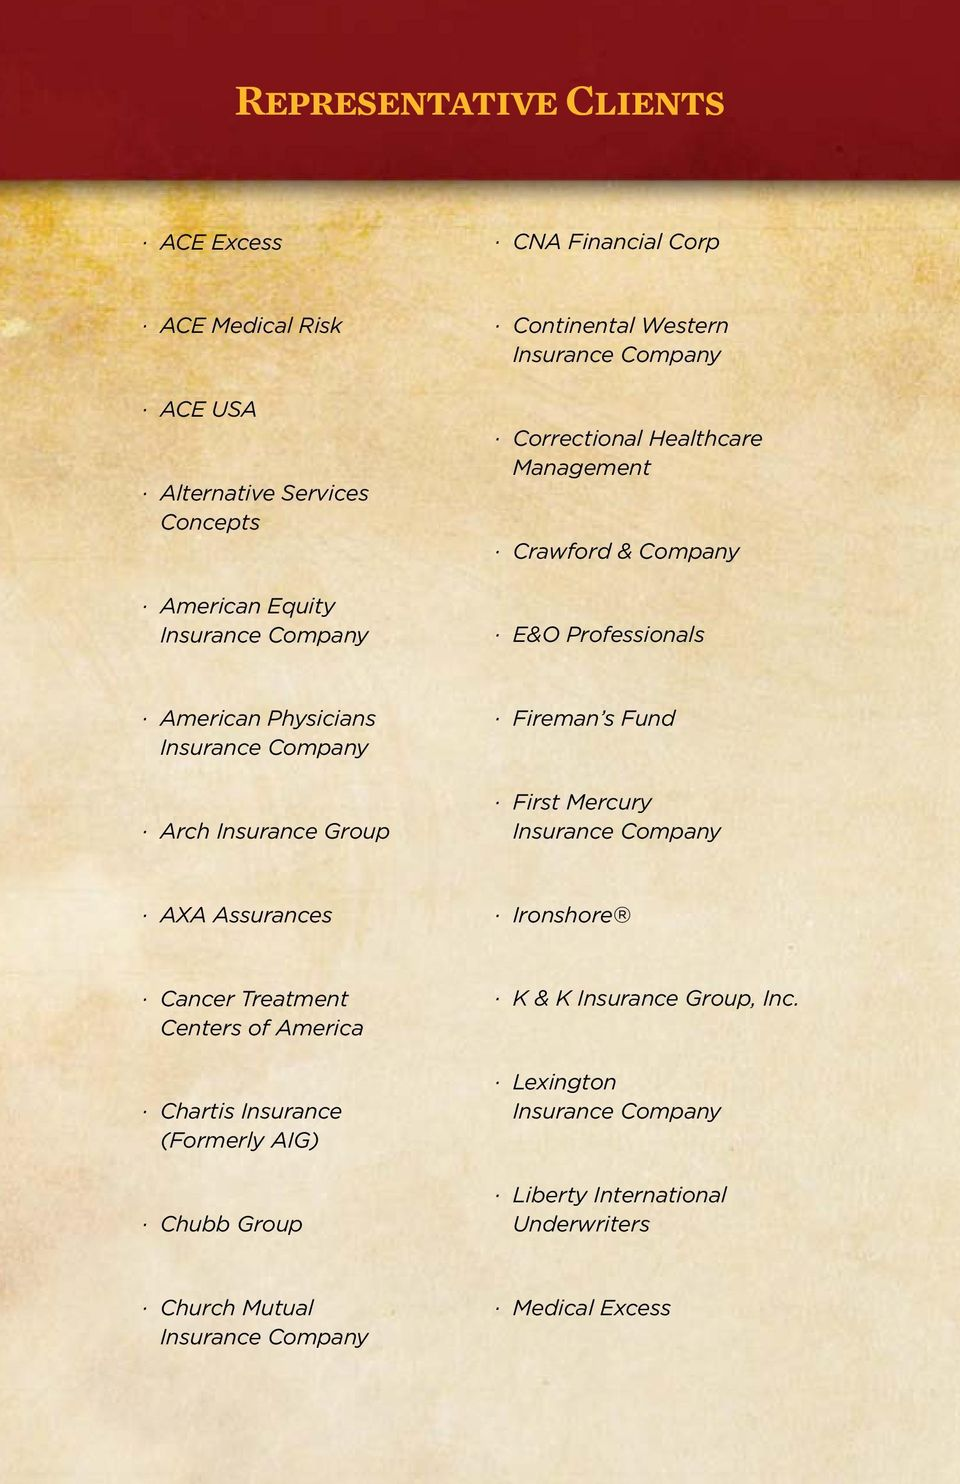 Arch Insurance Group Fireman s Fund First Mercury Insurance Company AXA Assurances Ironshore Cancer Treatment Centers of America Chartis Insurance